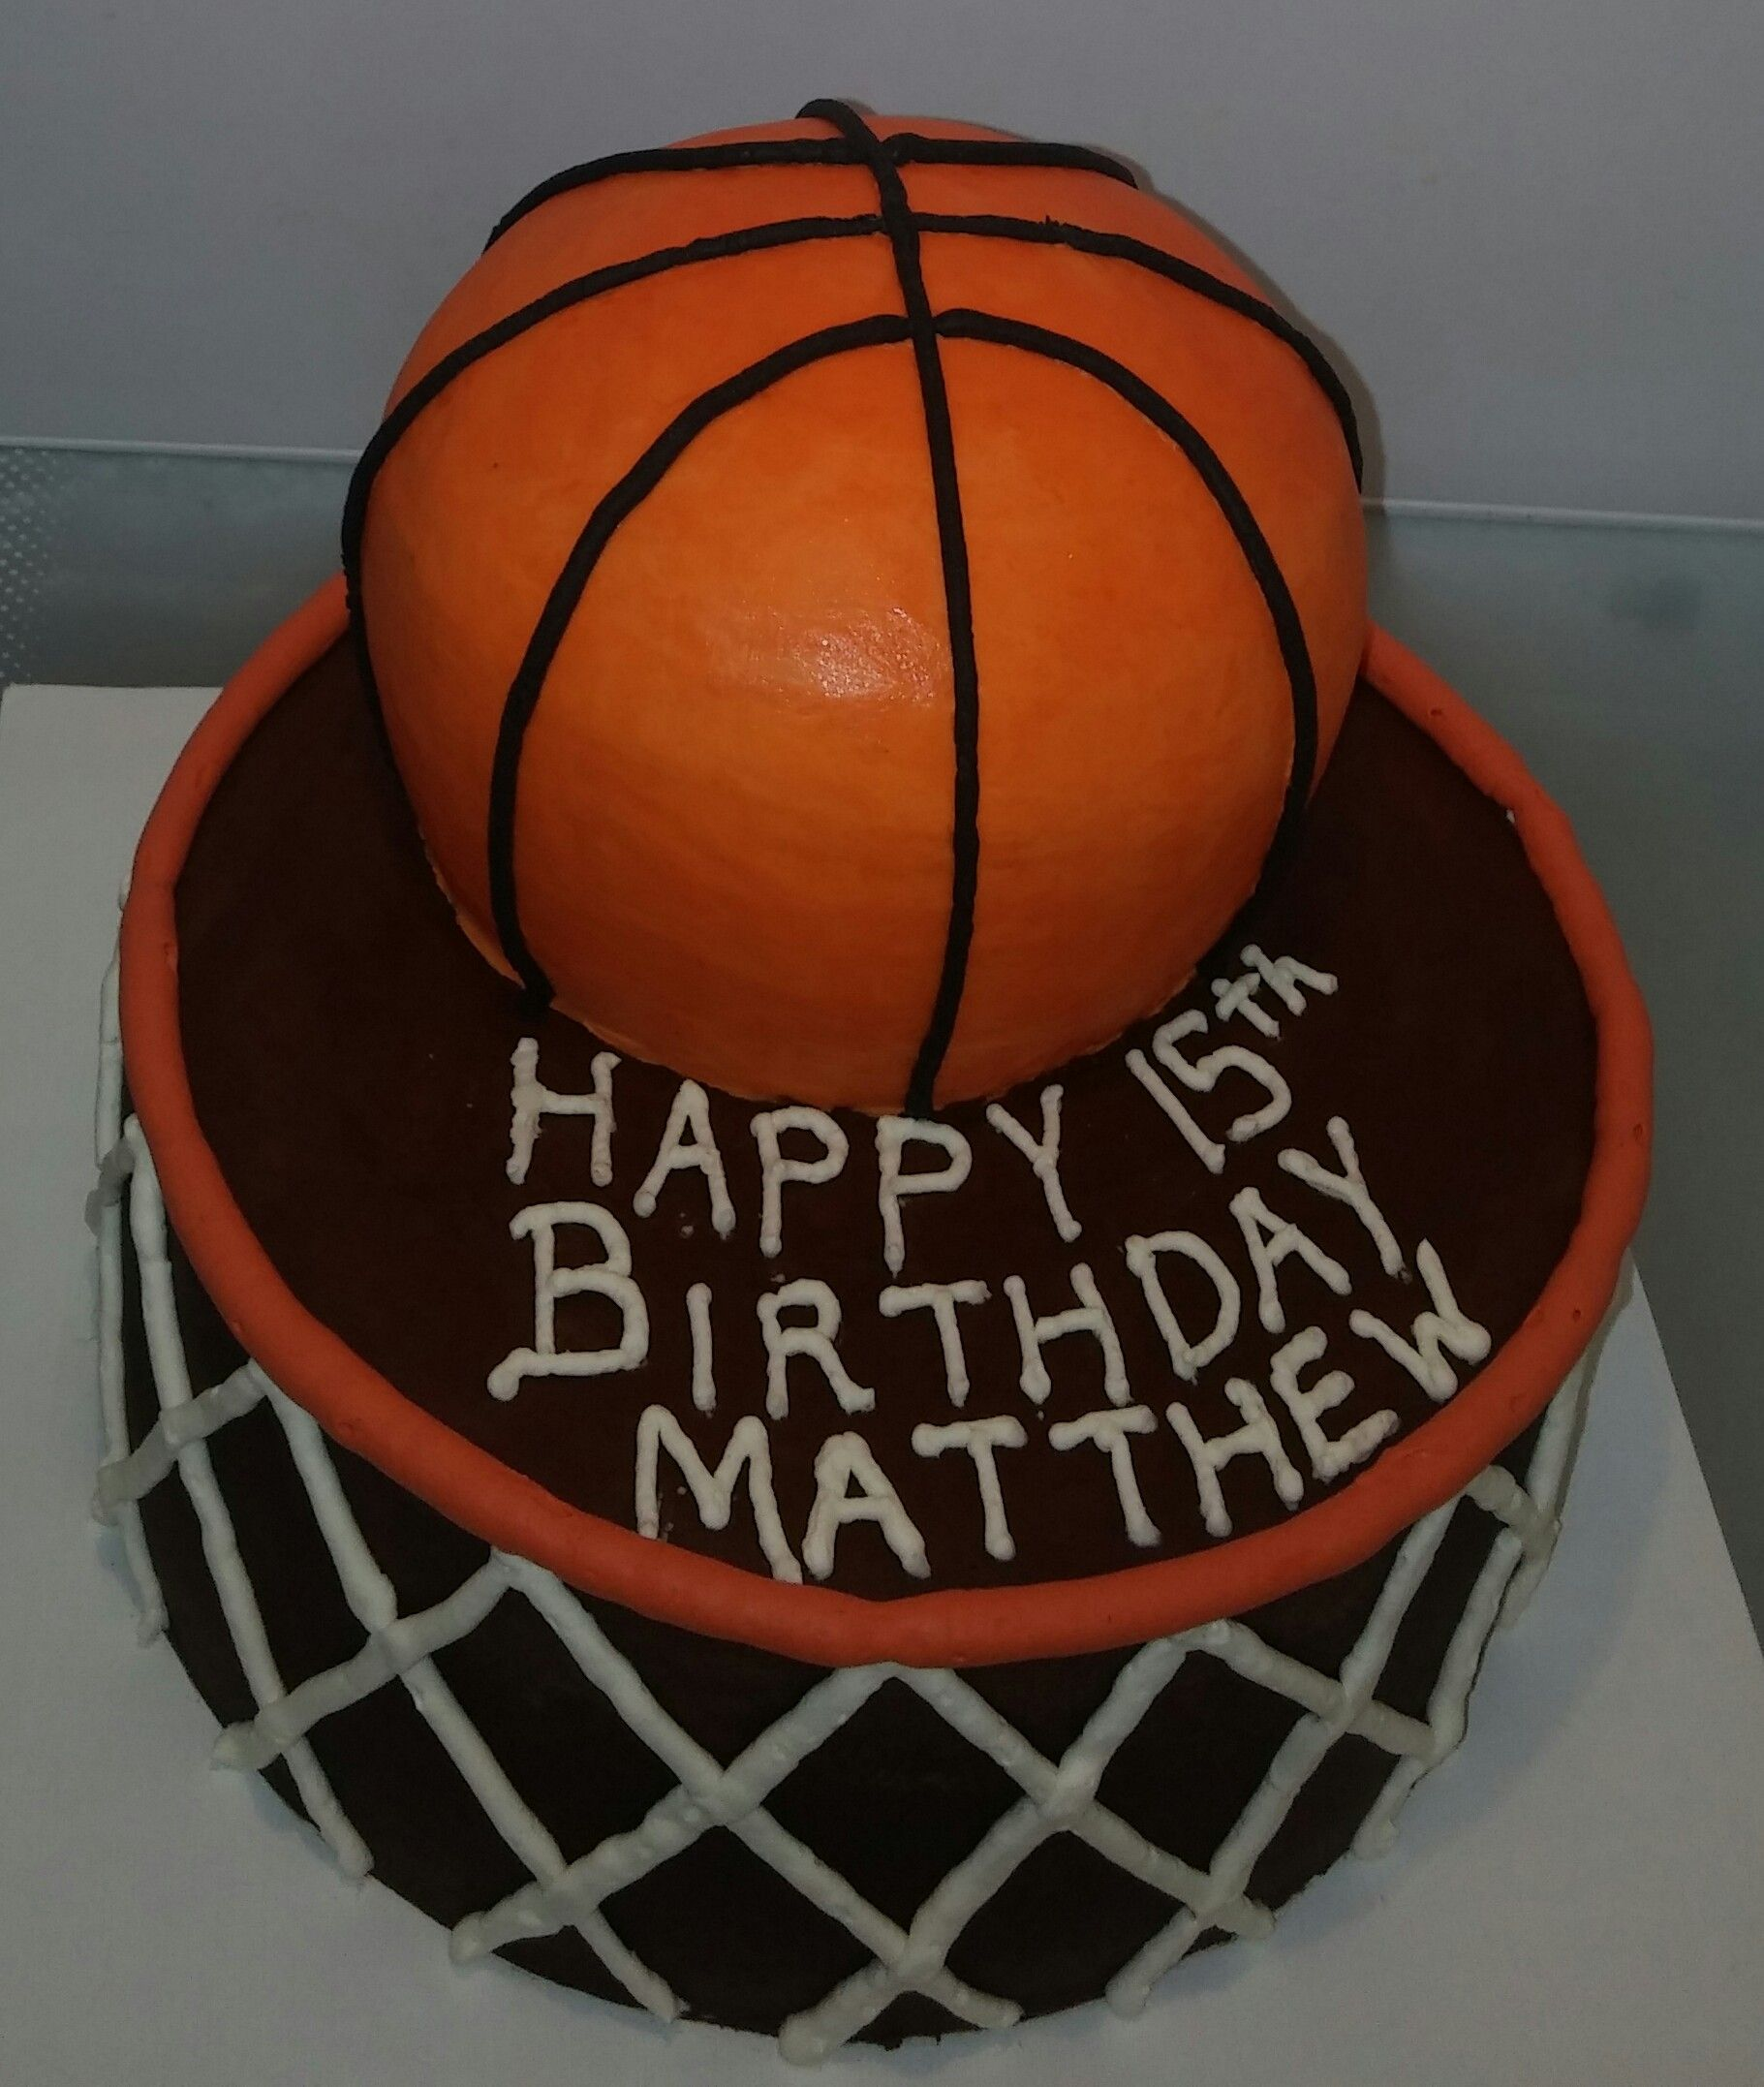 This was a  basketball themed cake made of chocolate cake and chocolate frosting. Basketball was all cake with a chocolate frosting and buttercream frosting on top. No fondant was used.